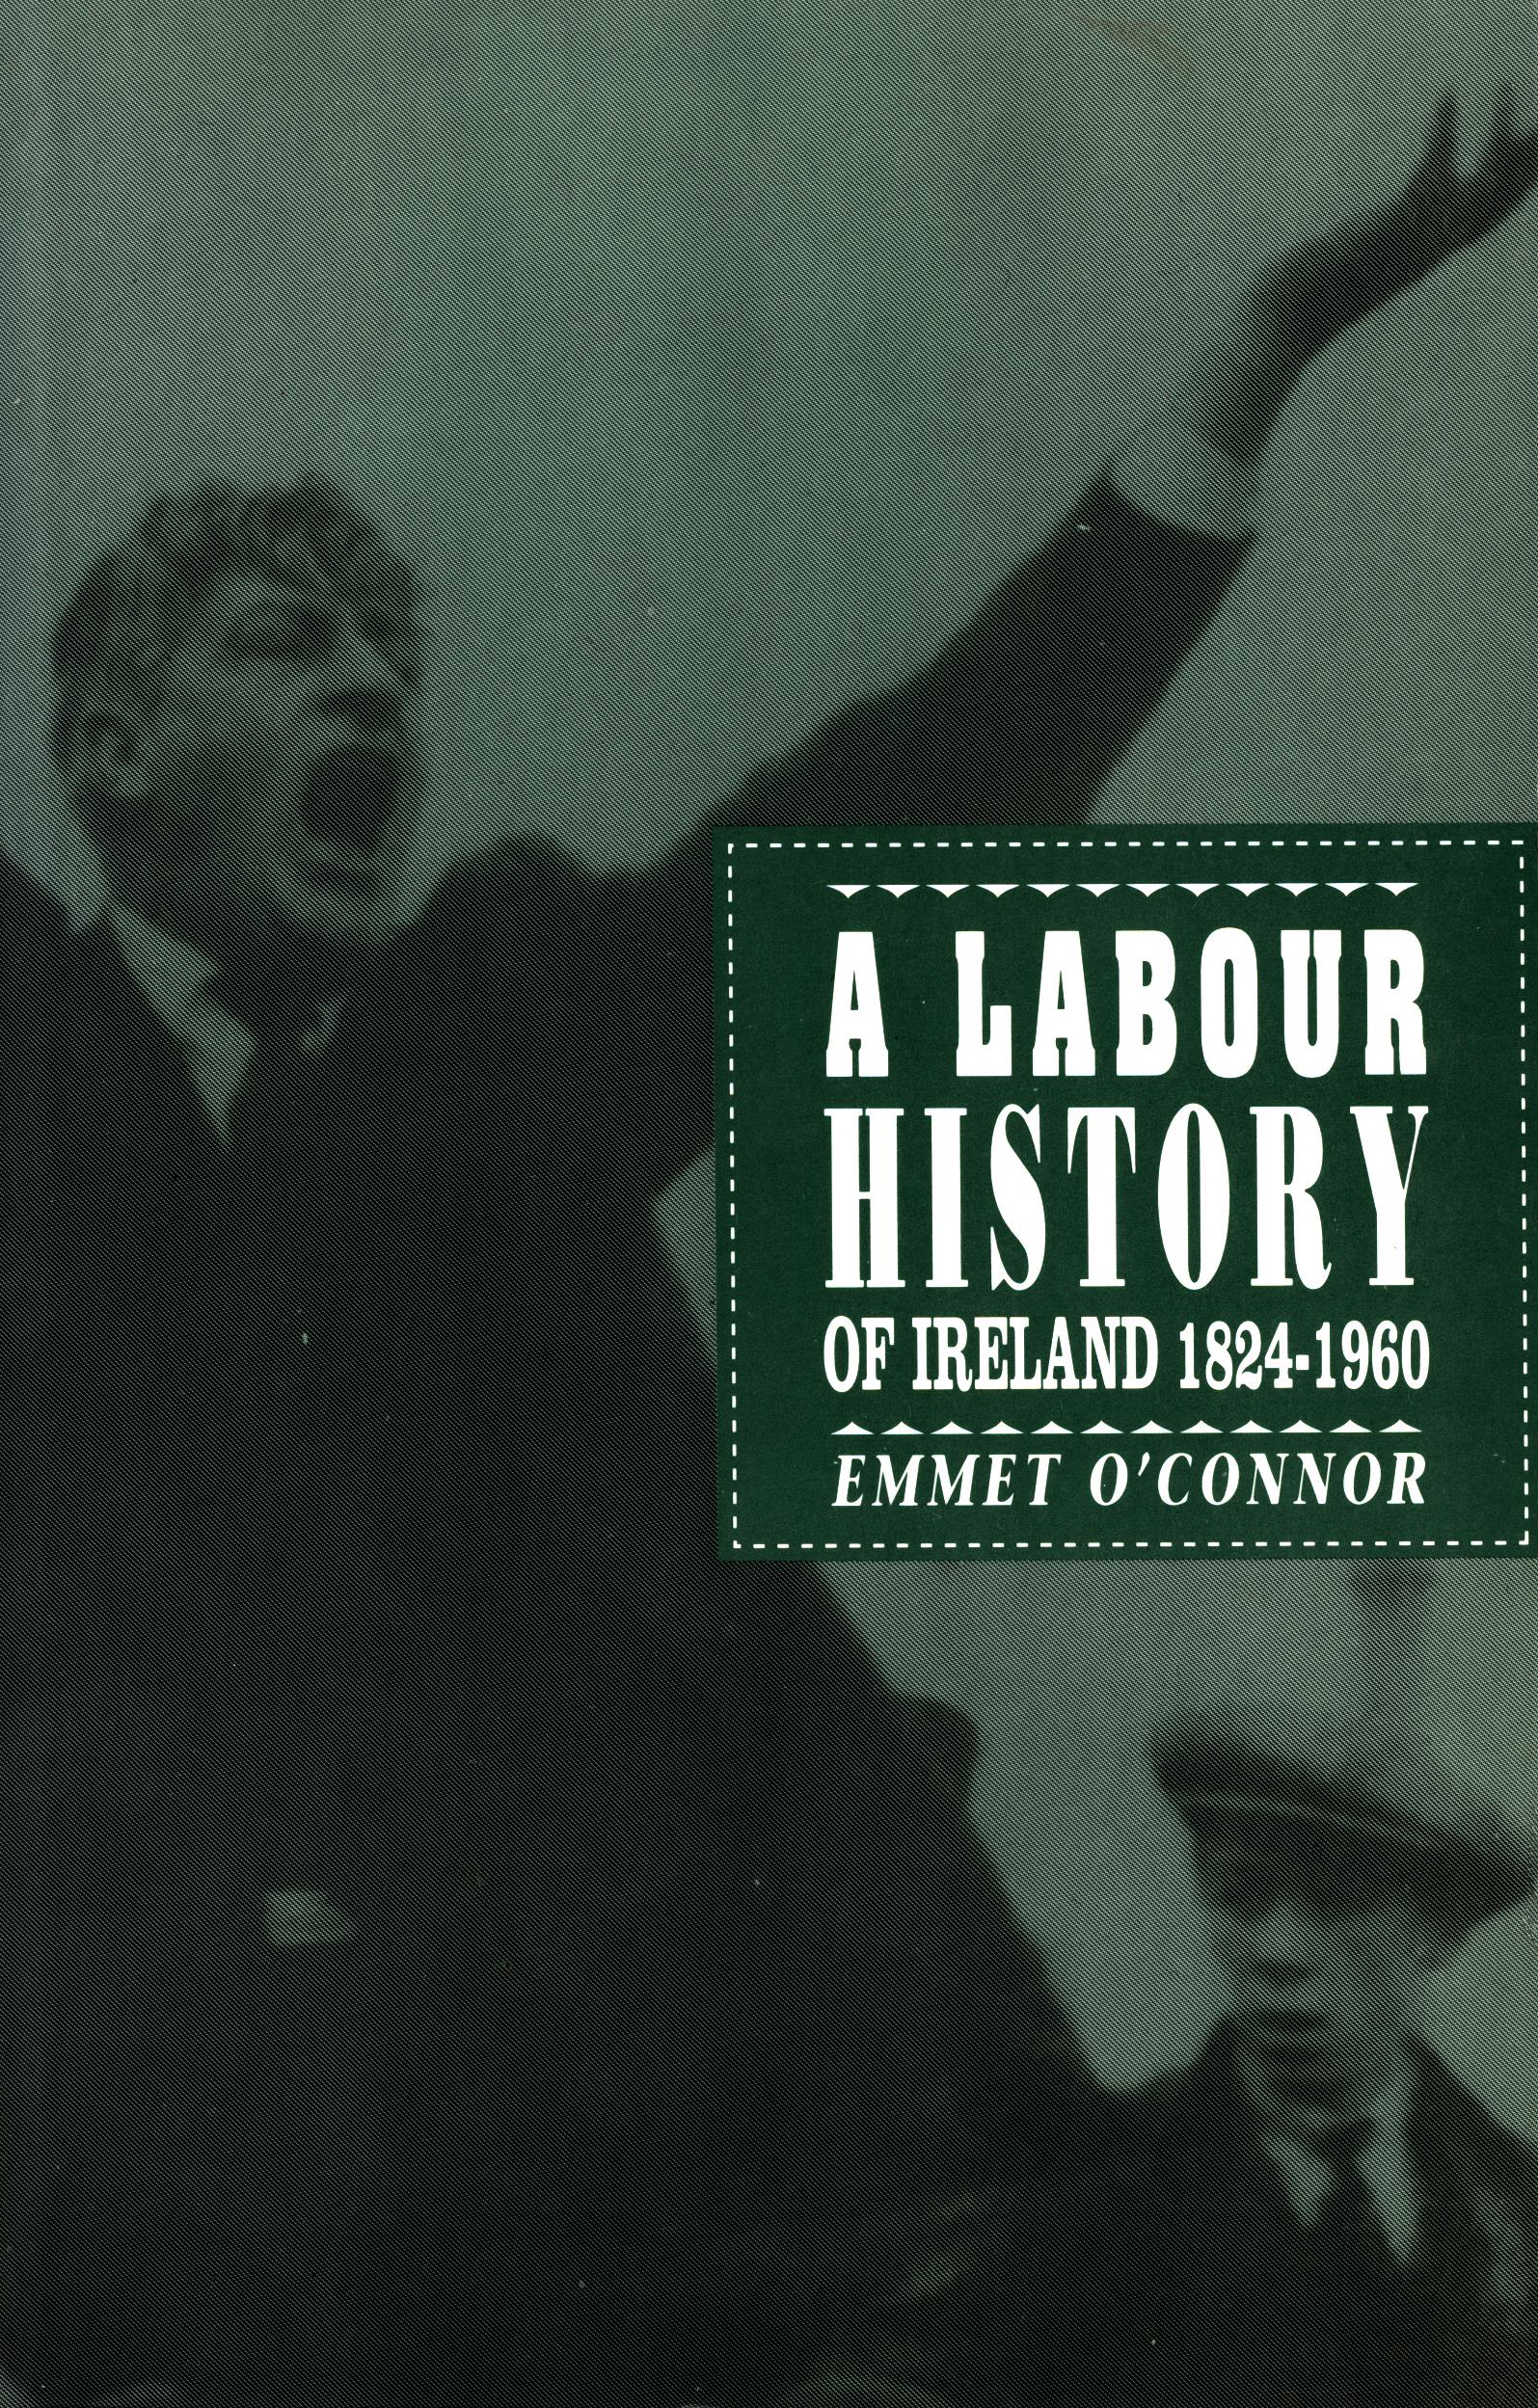 Emmet O'Connor: A Labour History of Ireland 1824-1960